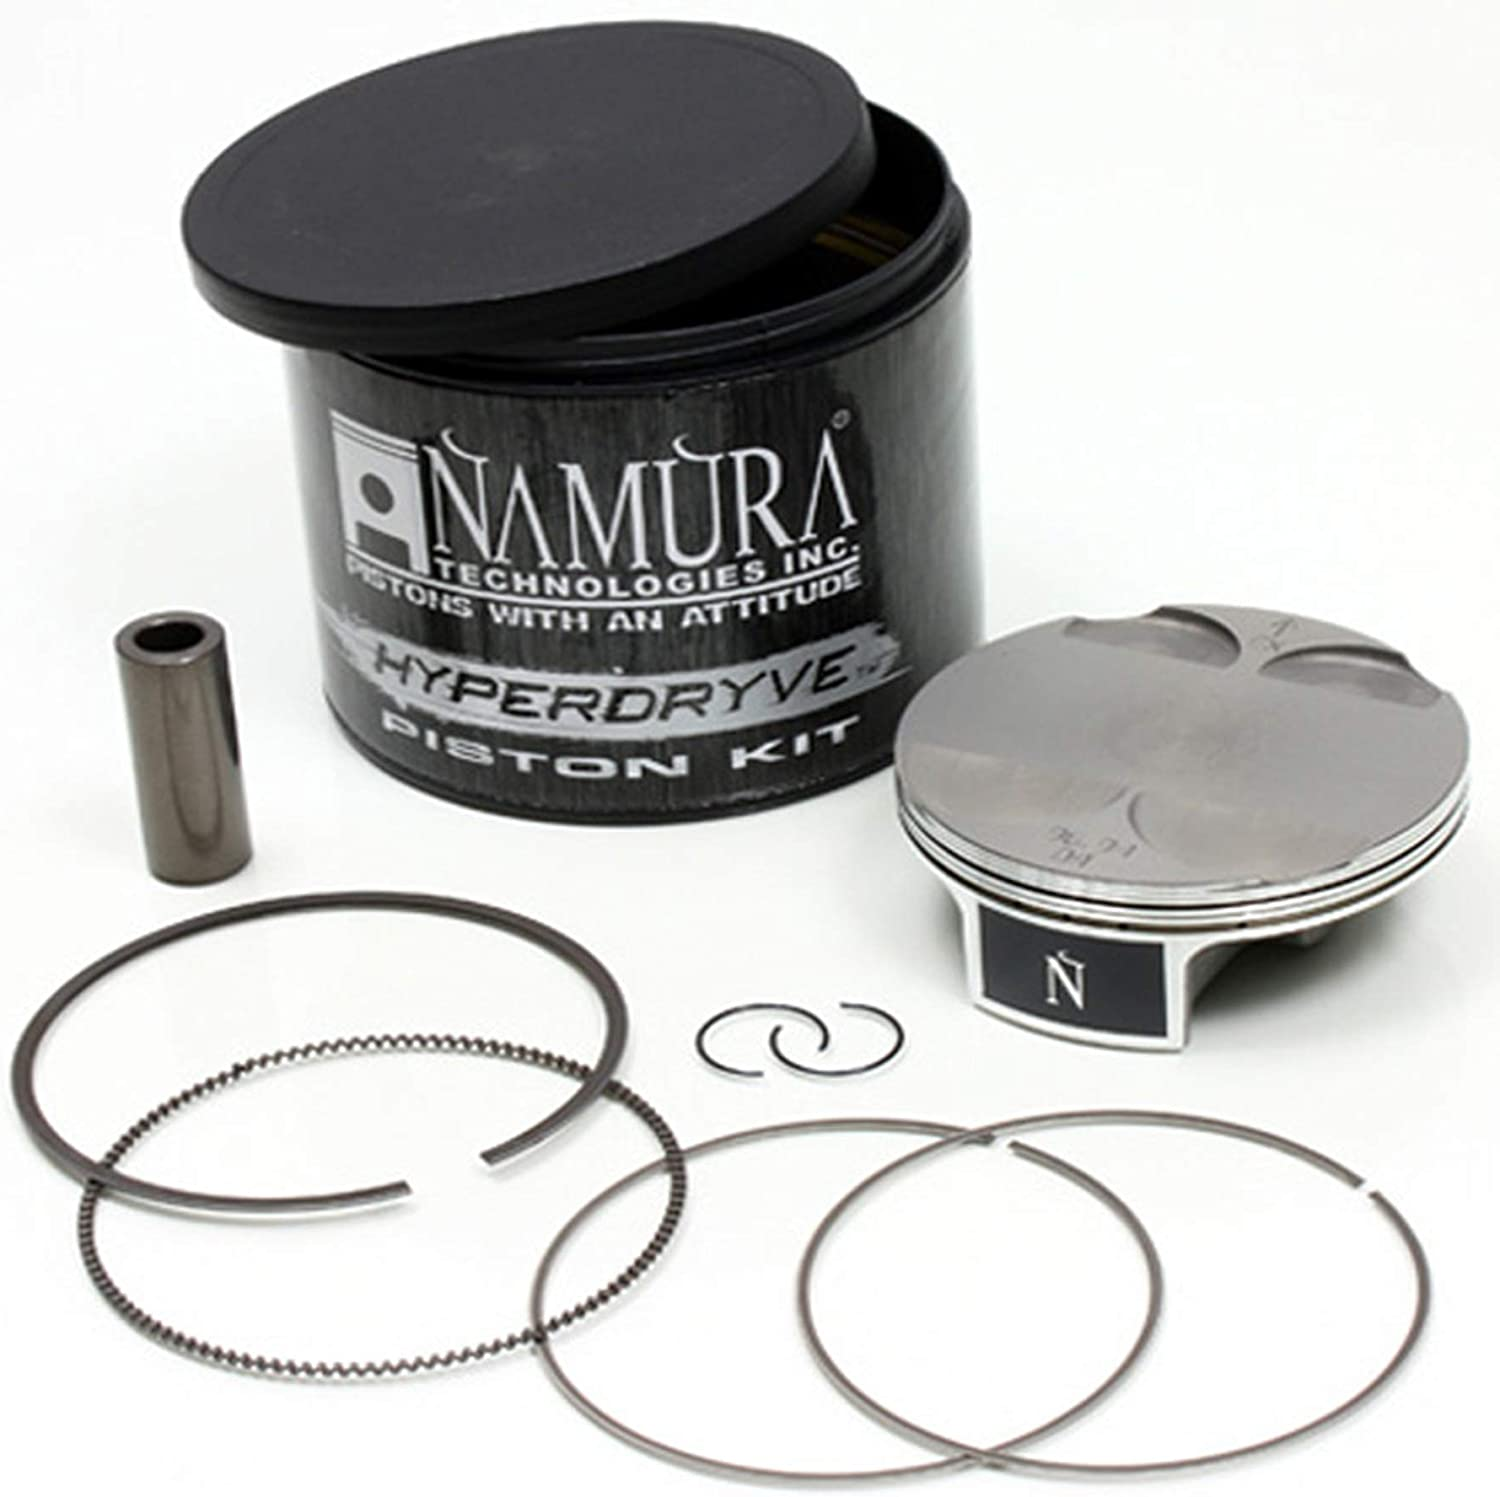 Piston Kit - Standard 40% OFF Cheap Sale Fort Worth Mall Bore Fits 12.5:1 96.94mm 2009 Compression